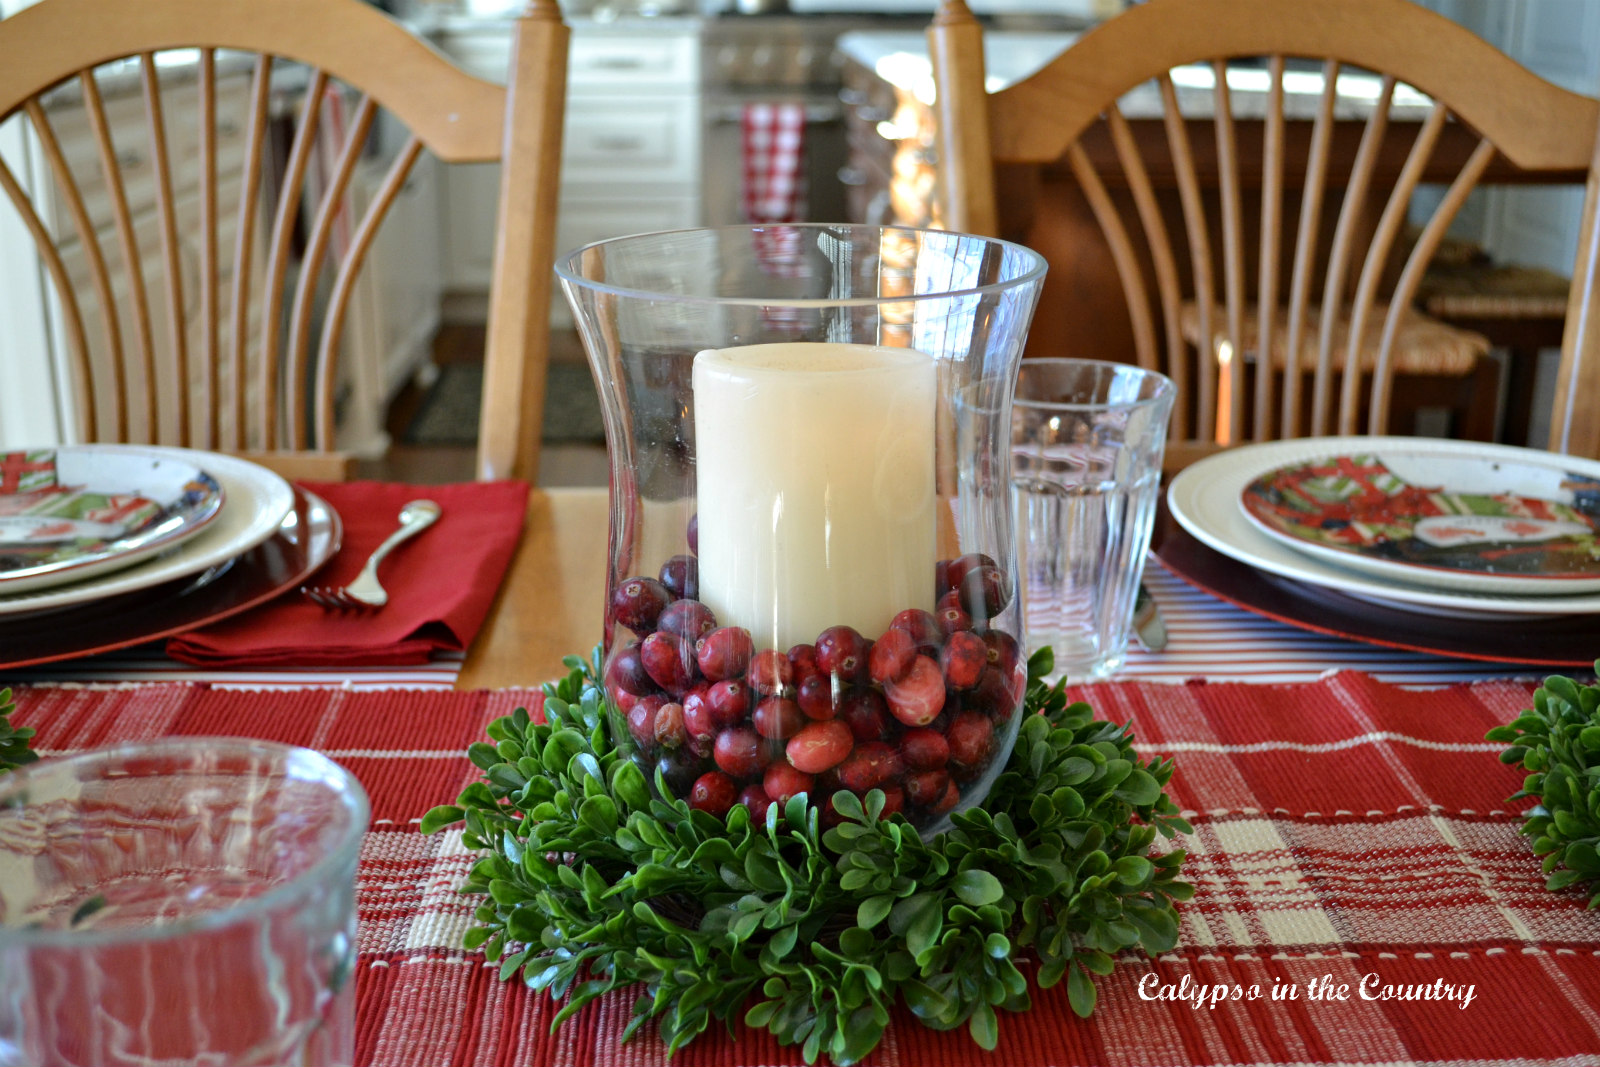 Colorful and Festive Christmas Table in the Kitchen